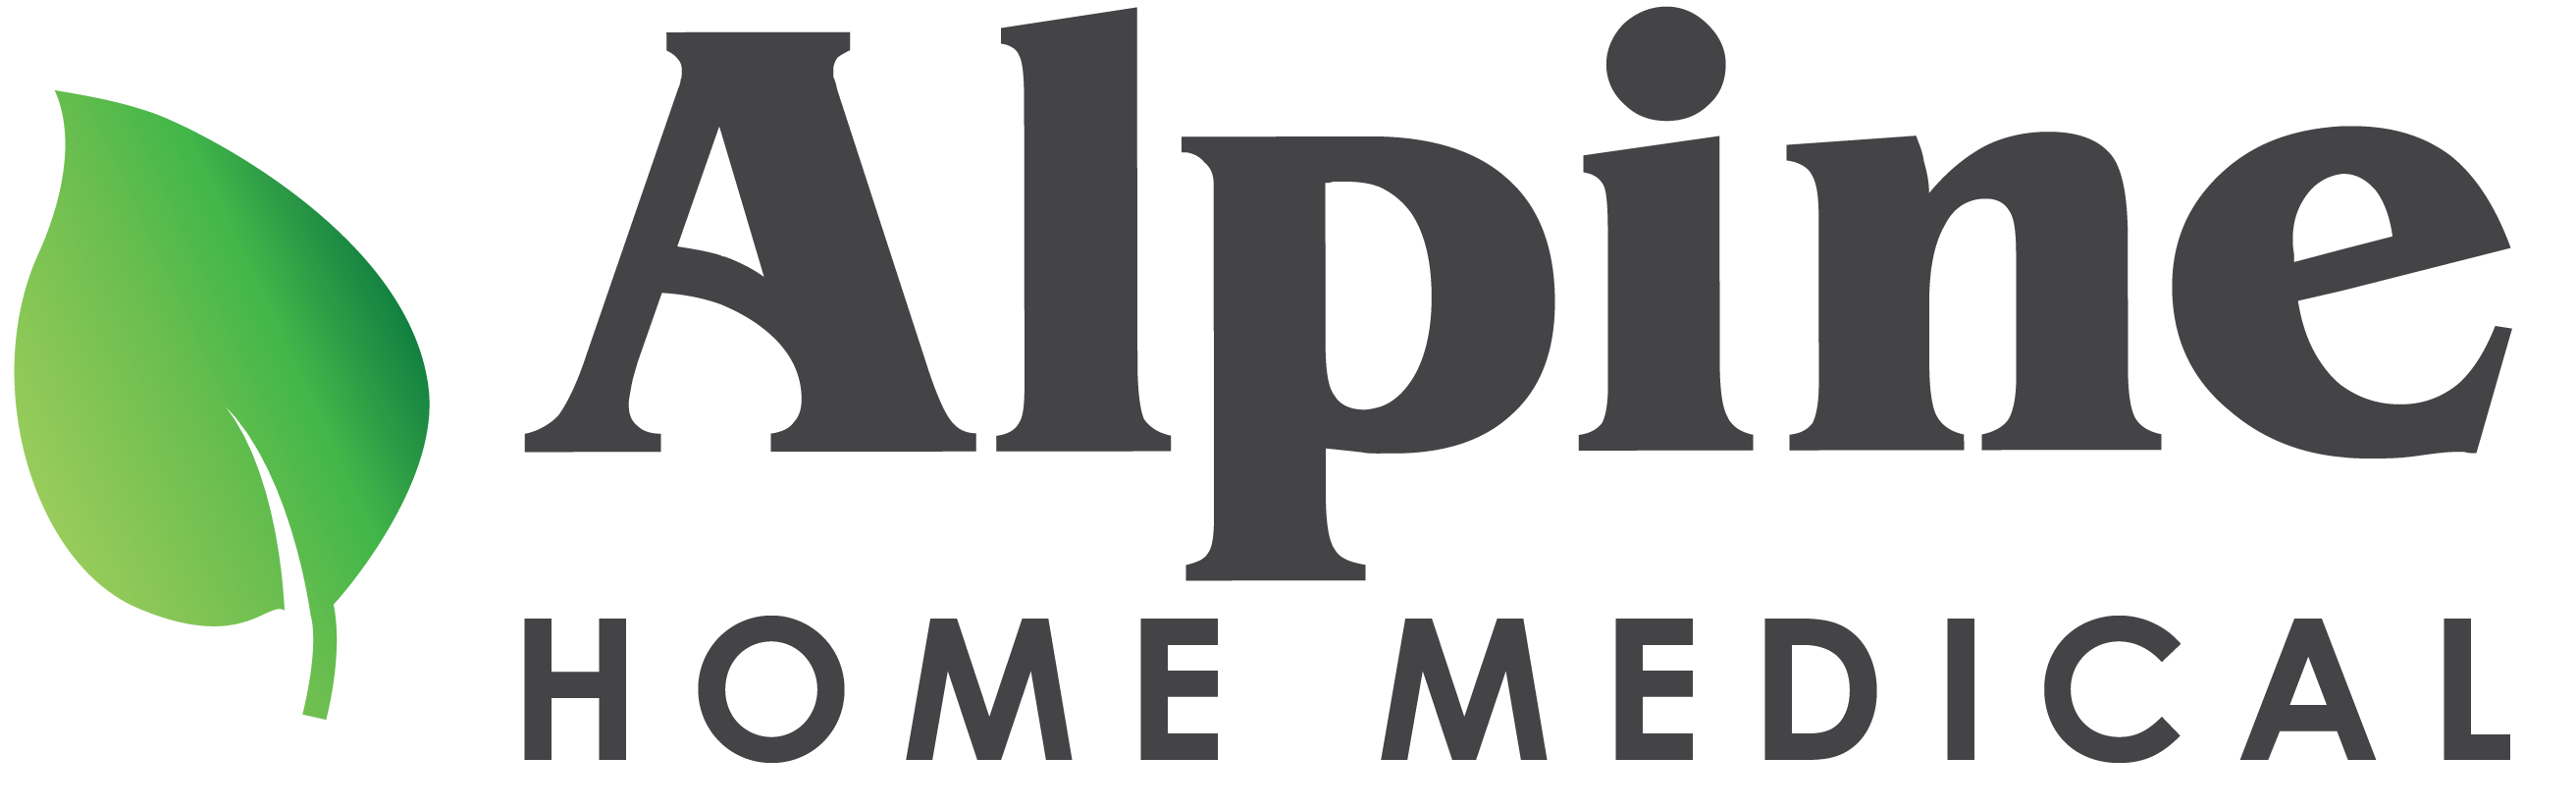 Alpine Vein Screenings